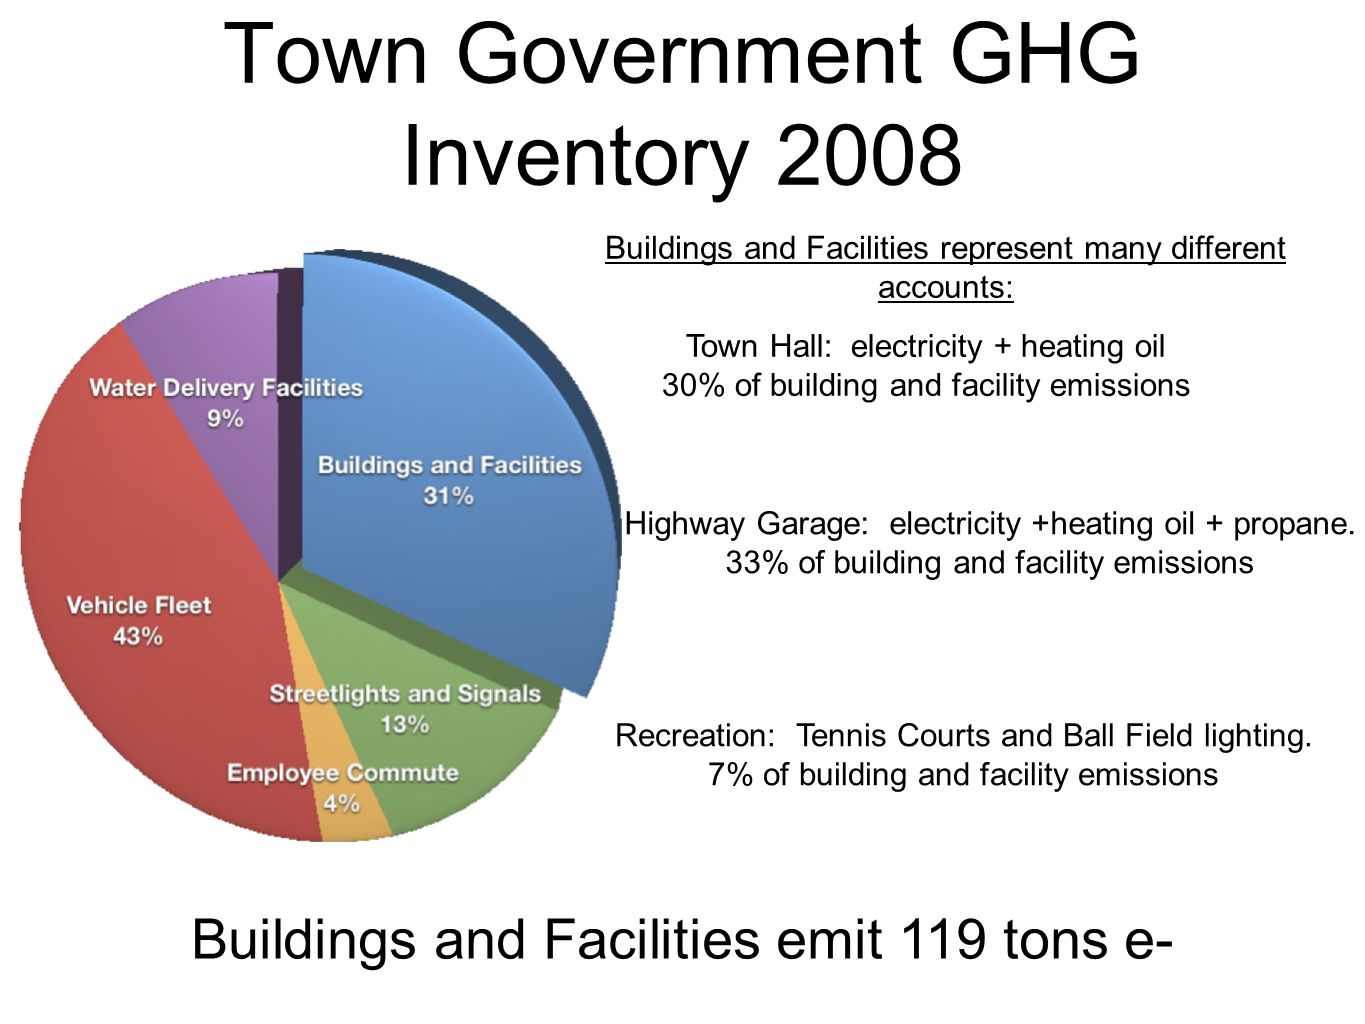 Town Government GHG Inventory 2008 Buildings and Facilities represent many different accounts: Town Hall: electricity + heating oil 30% of building and facility emissions Highway Garage: electricity +heating oil + propane.